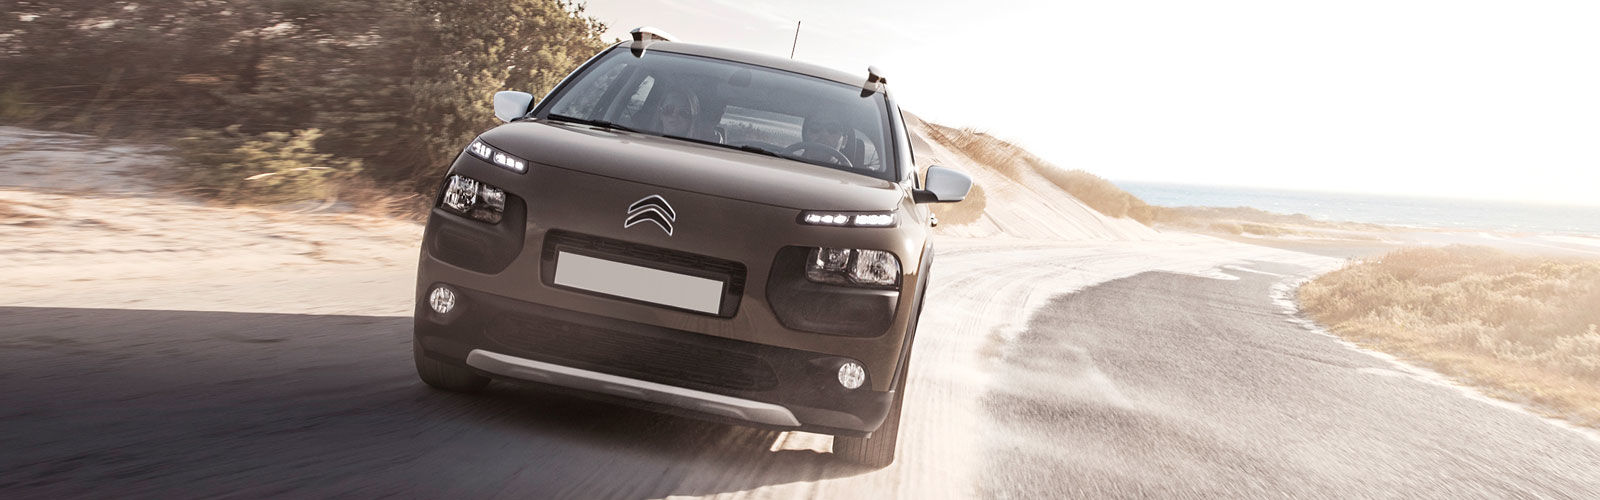 Citroen C4 Cactus Rip Curl What You Need To Know Carwow